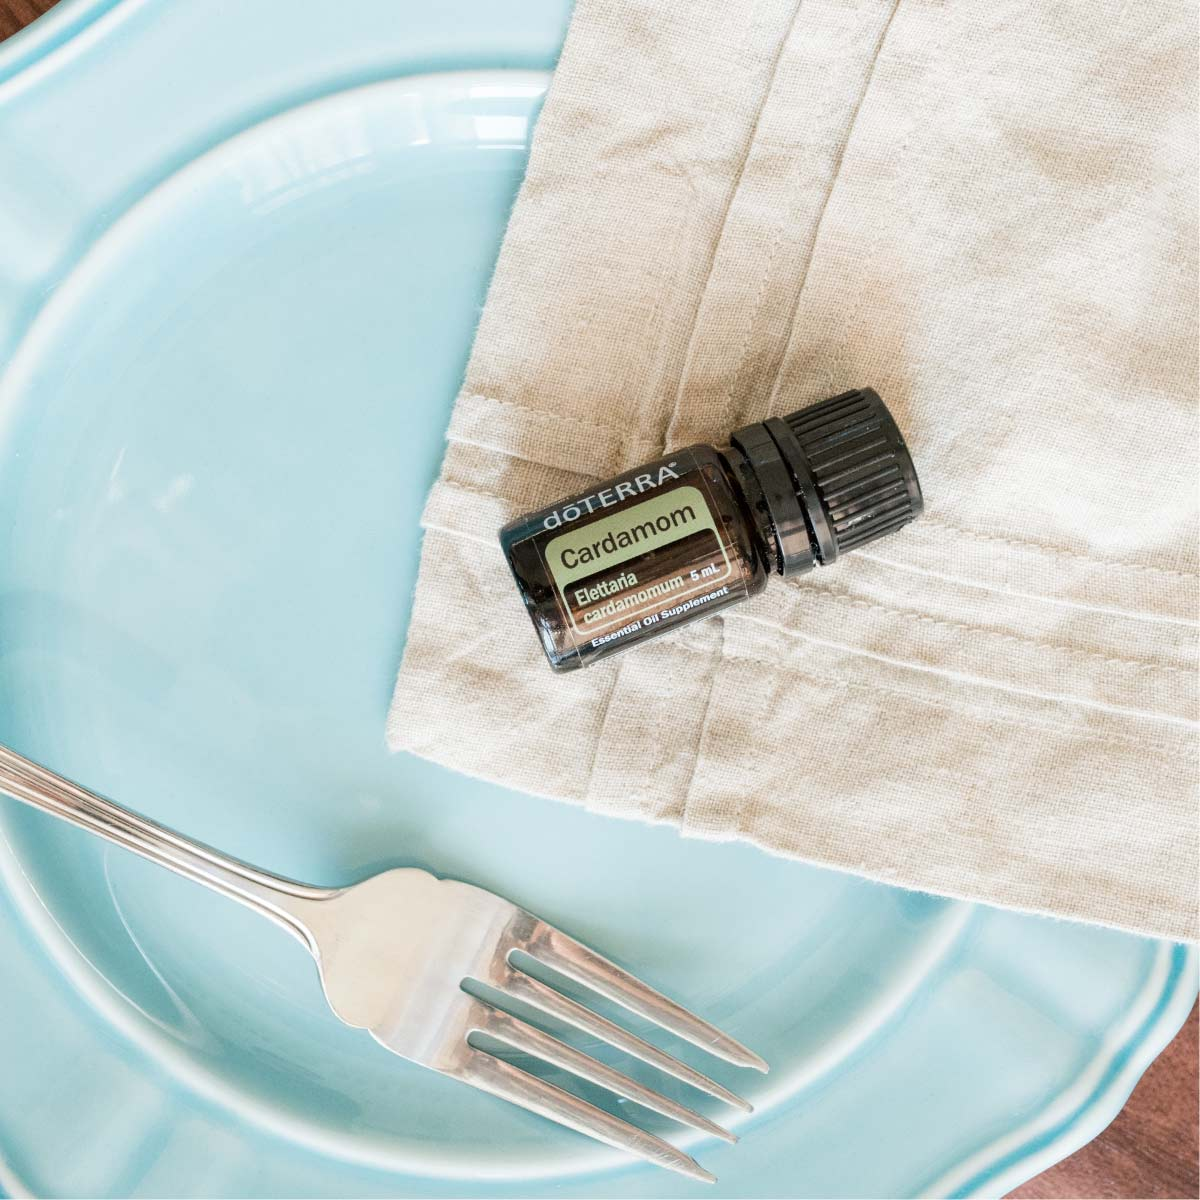 Bottle of Cardamom oil next to a dinner plate, fork, and napkin. What does Cardamom oil smell like? Cardamom essential oil has a warm aroma that is both spicy and sweet.